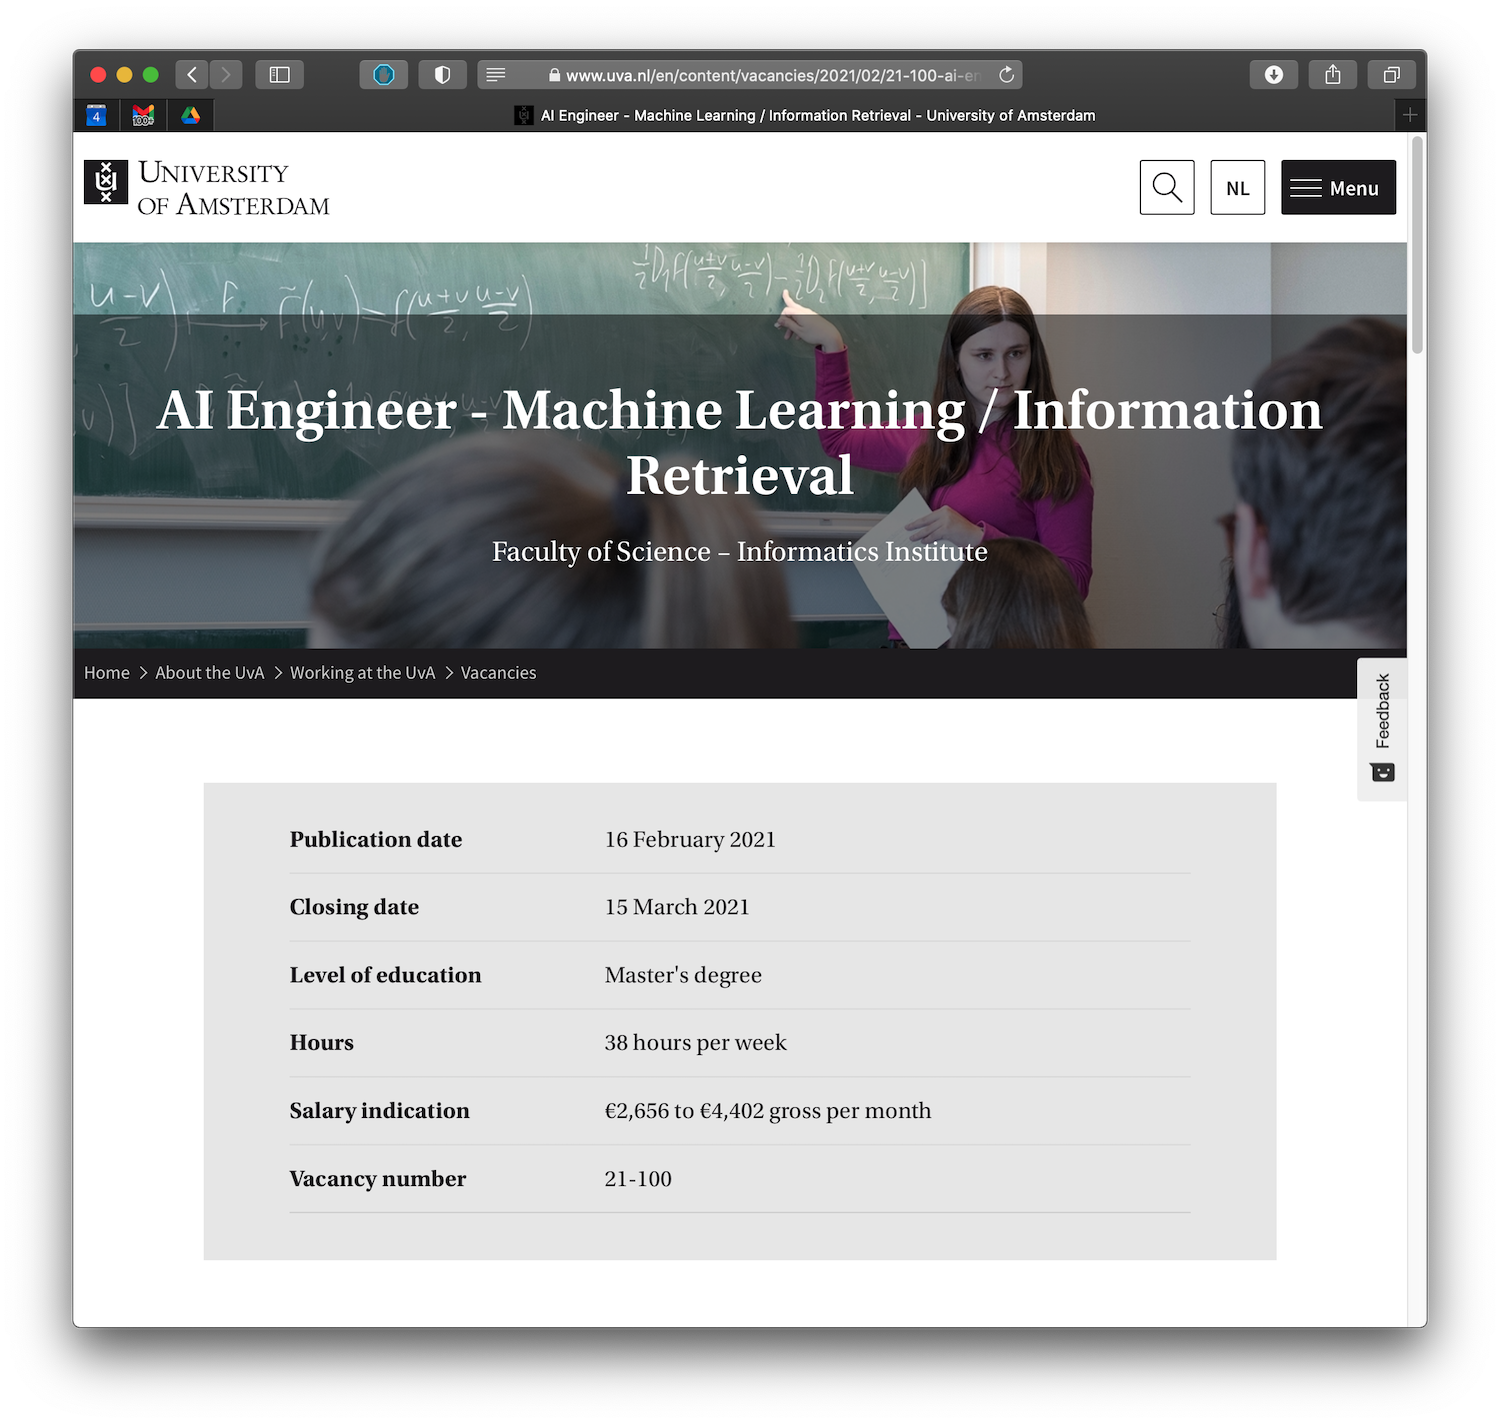 Join the IRLab as an AI Engineer